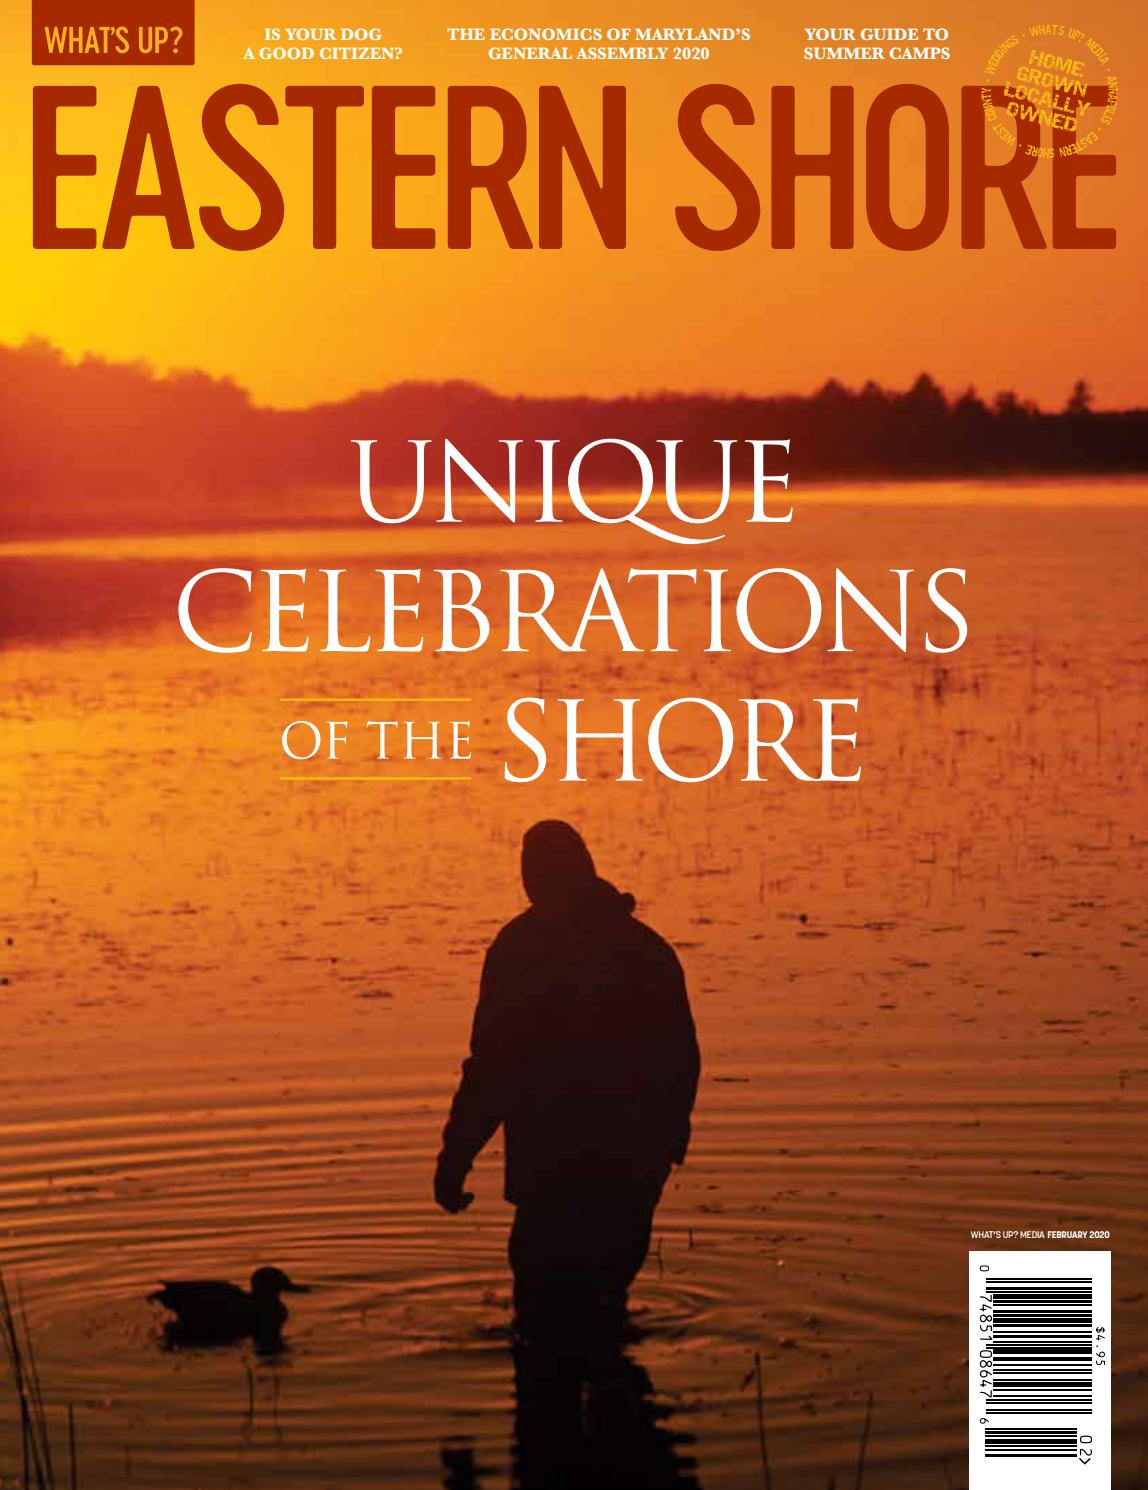 What S Up Eastern Shore February 2020 By What S Up Media Issuu